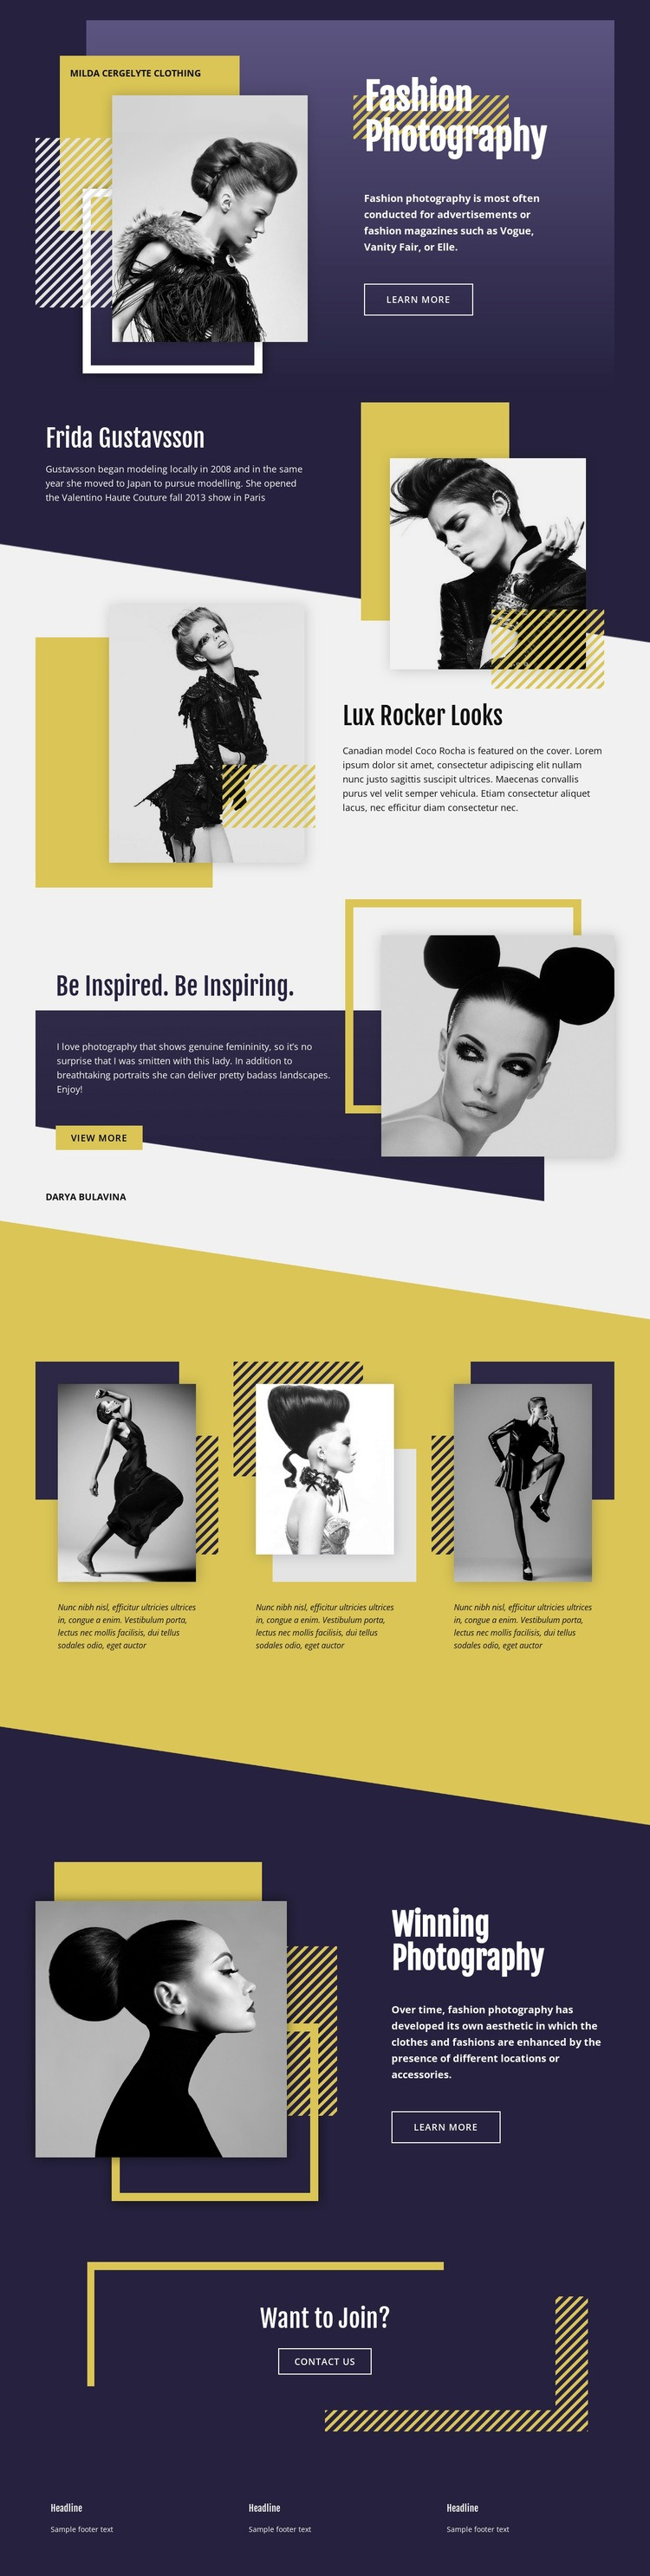 Fashion Photography Overlapping Html Code Example